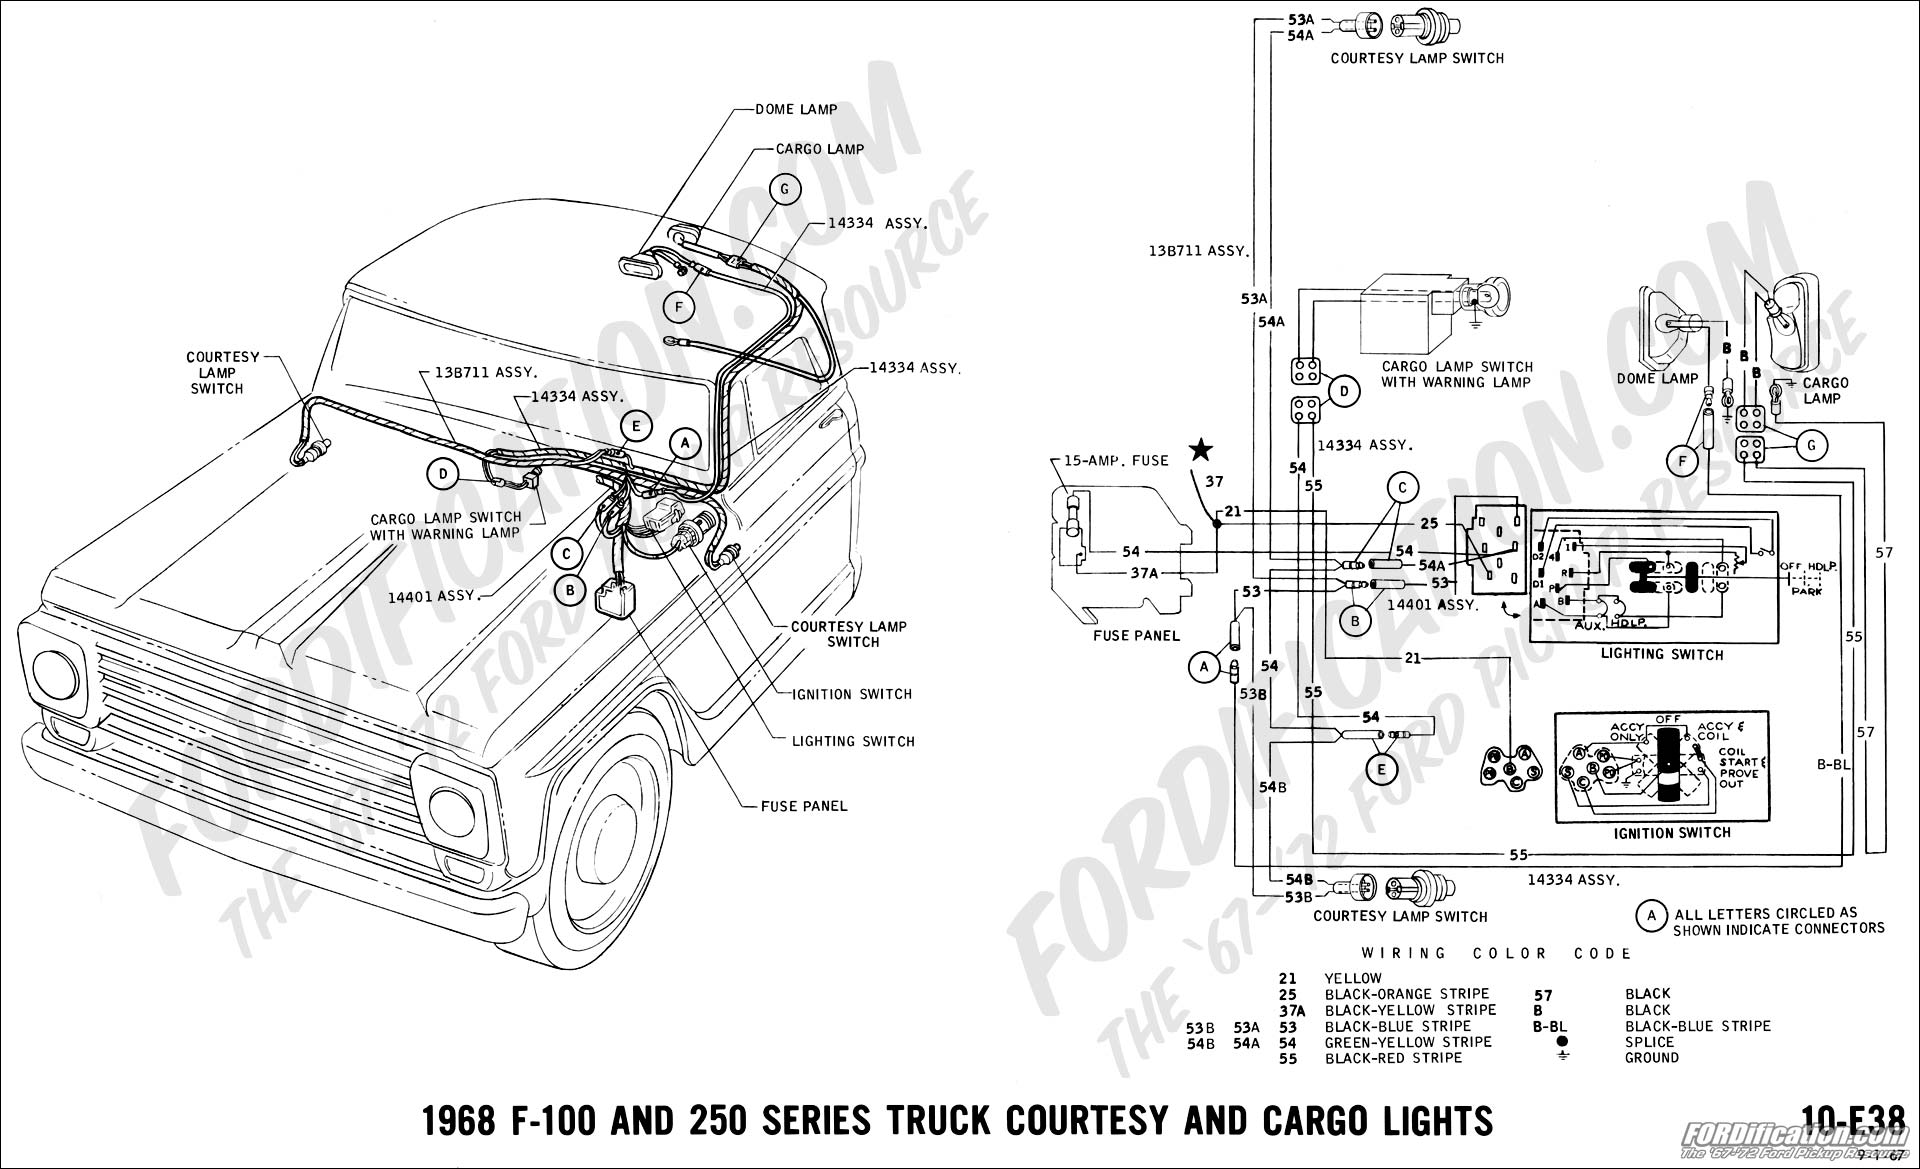 ford truck technical drawings and schematics section h wiring 1968 f 100 and f 250 courtesy and cargo lights